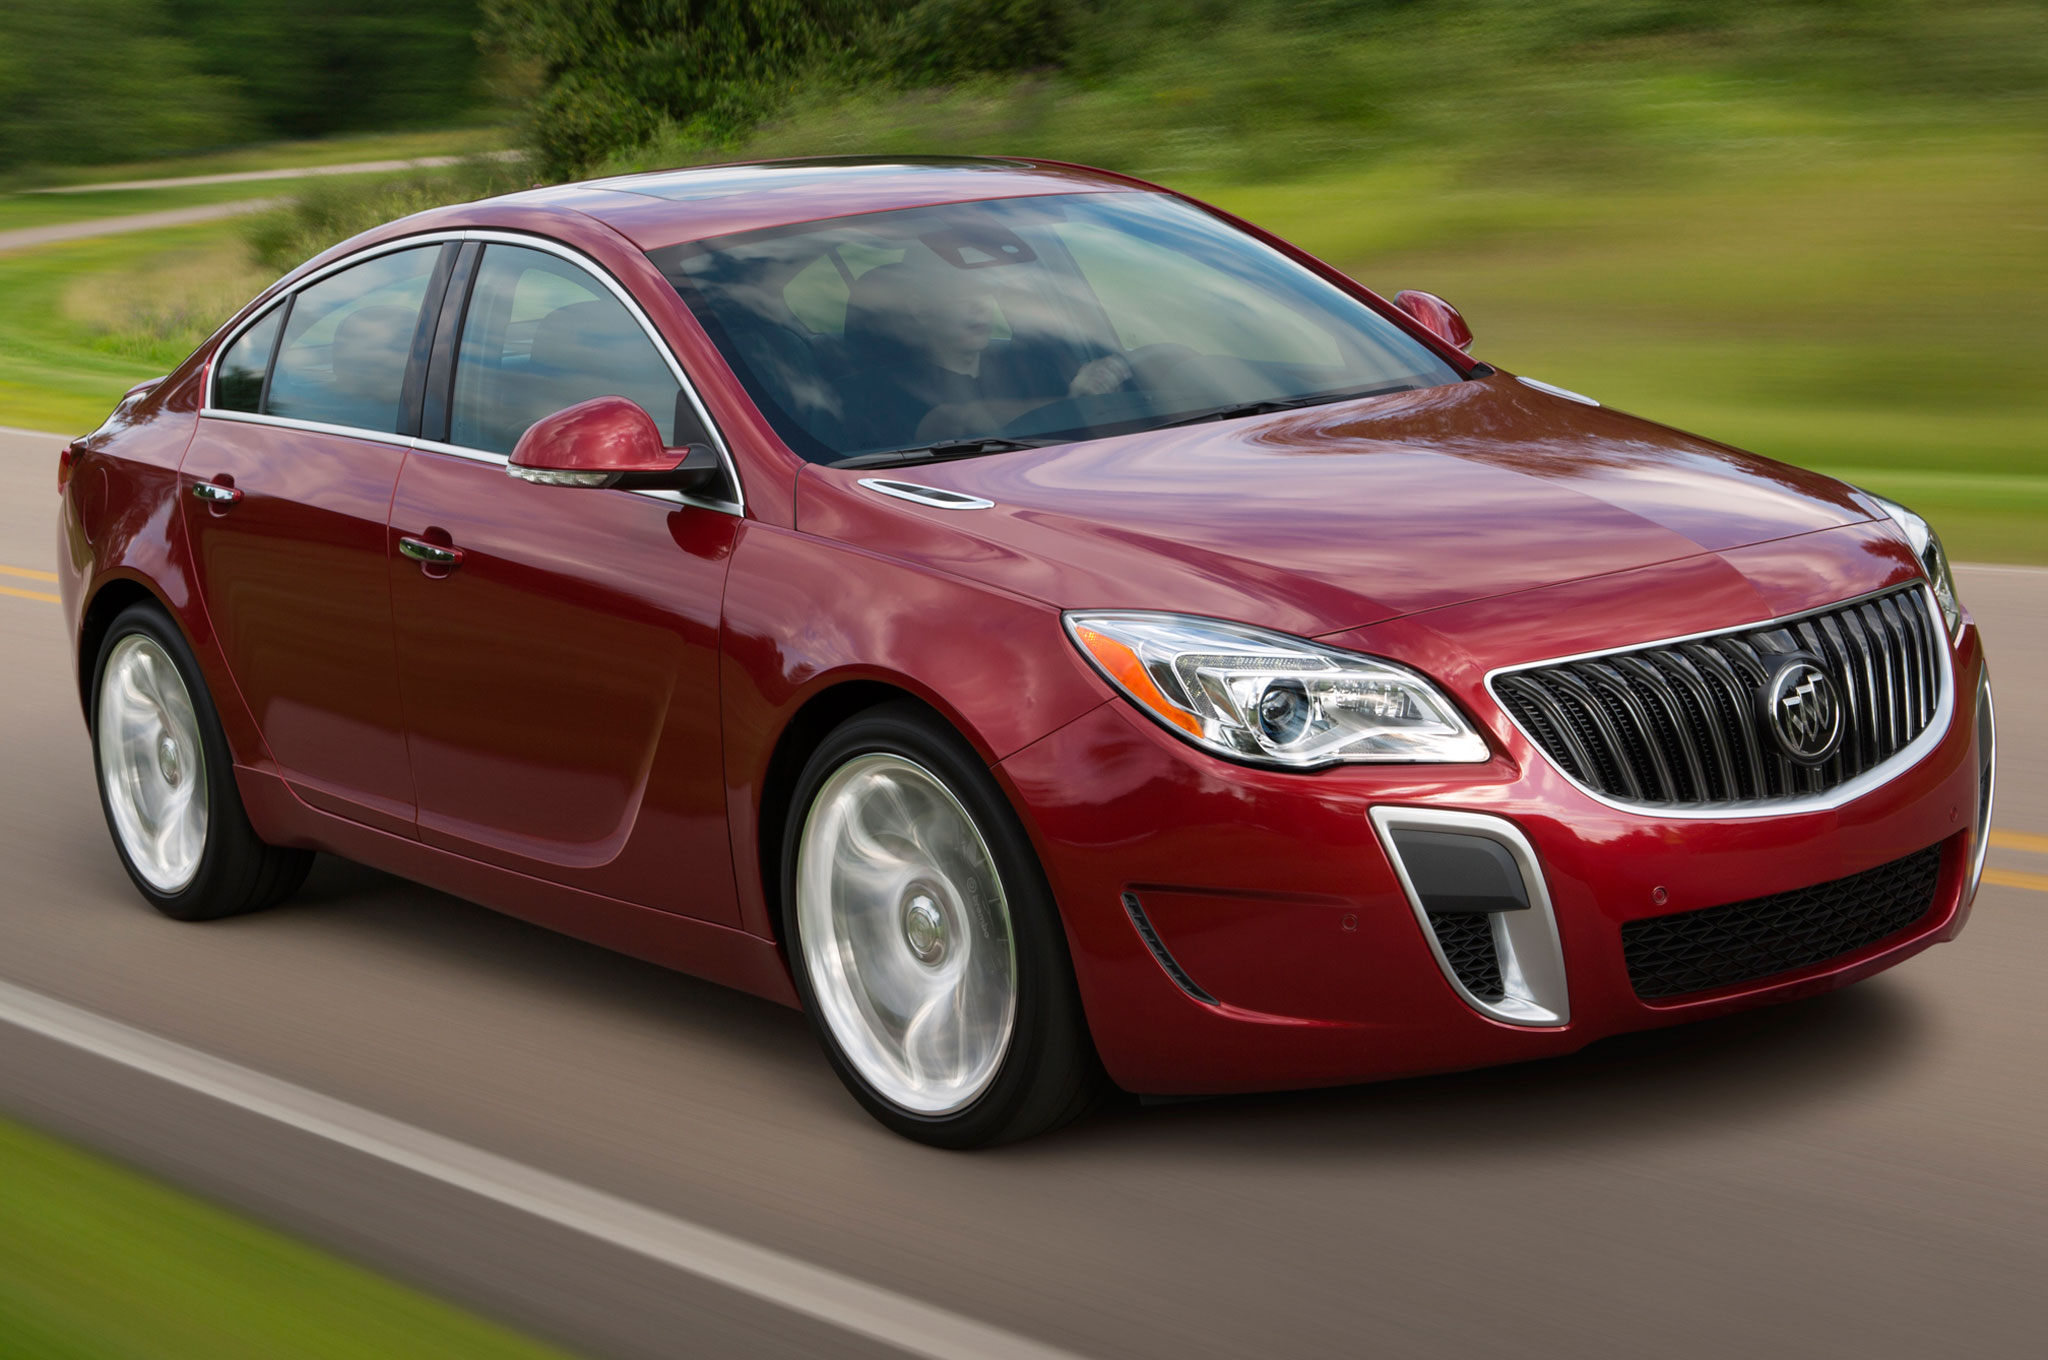 Buick Regal #12